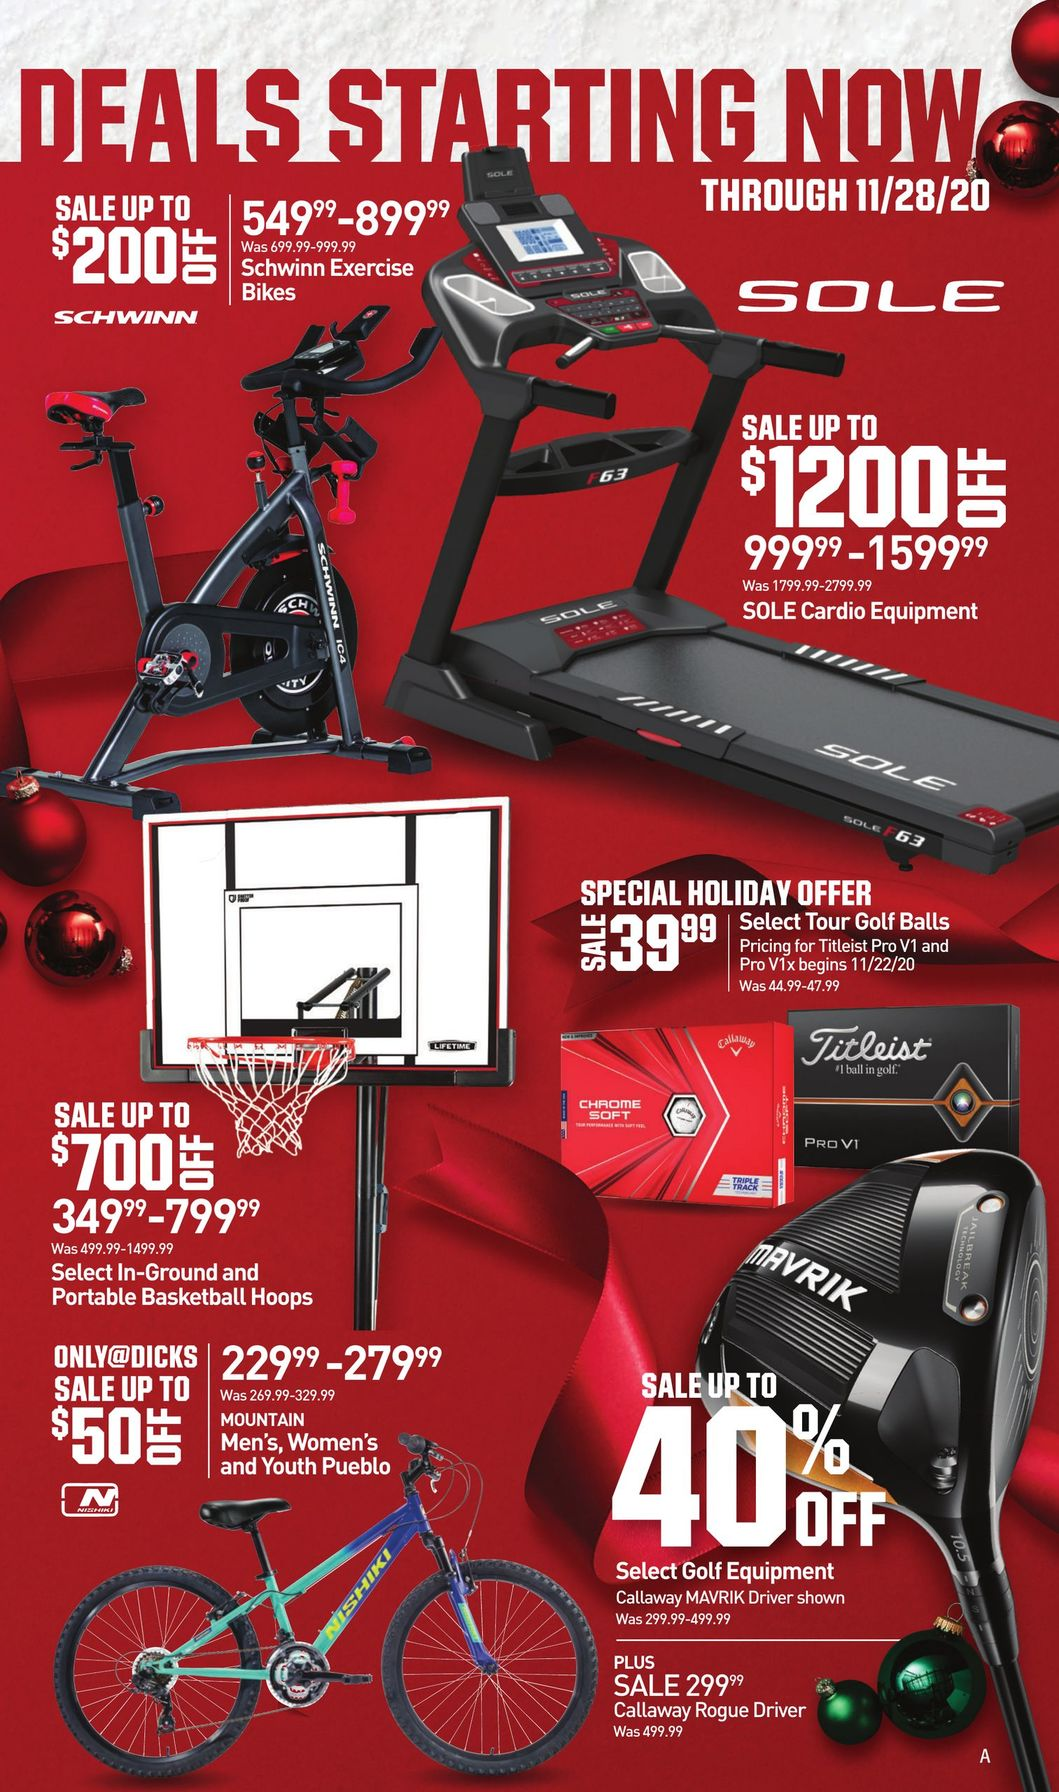 Dick's Sporting Goods Black Friday 2020 Page 3